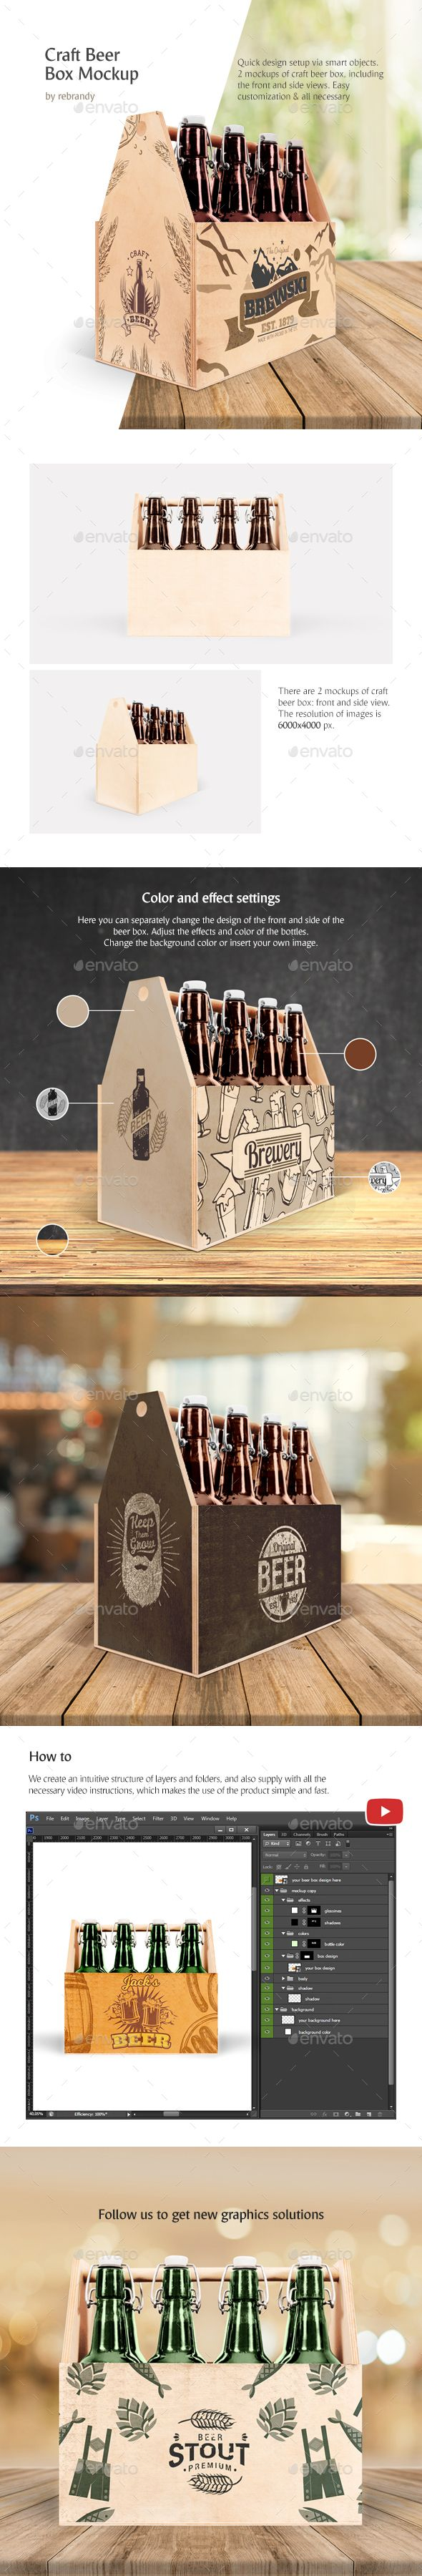 Download Craft Beer Box Mockup | Beer box, Box mockup, Craft beer